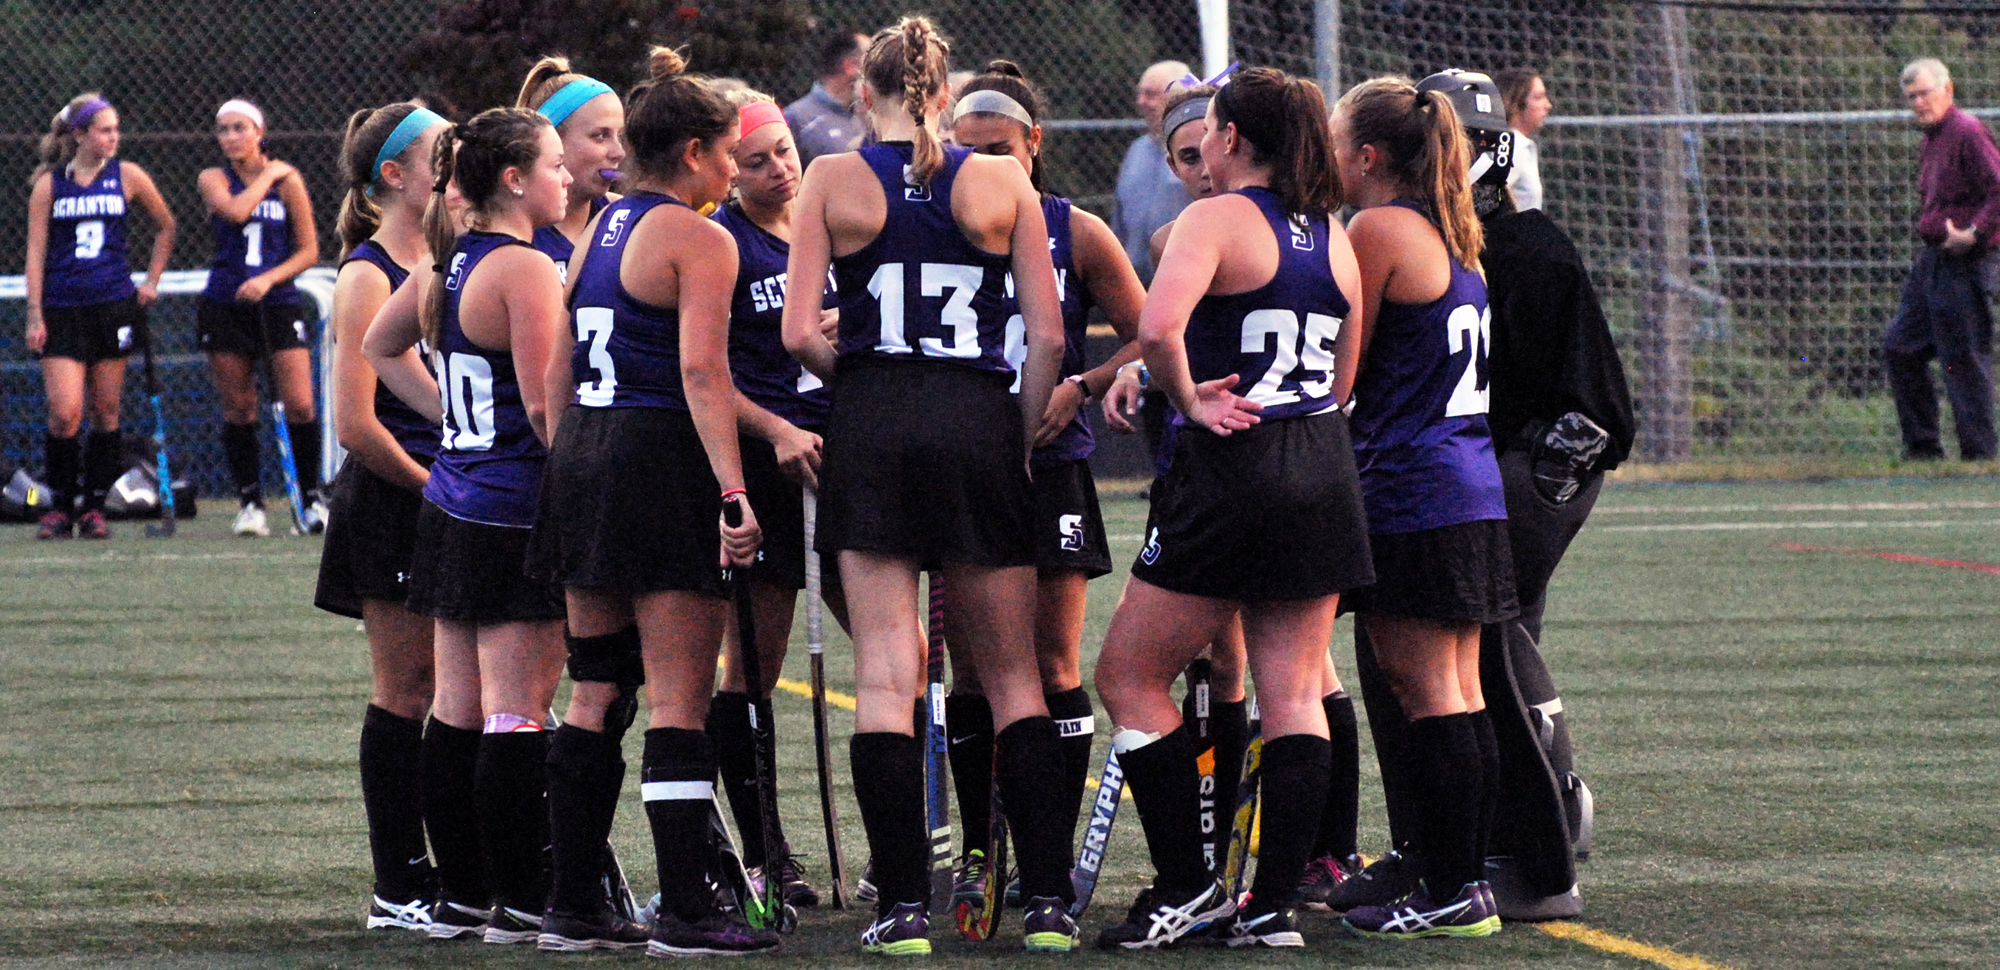 The field hockey team is hosting an ID Clinic on Saturday, March 24 at Fitzpatrick Field.